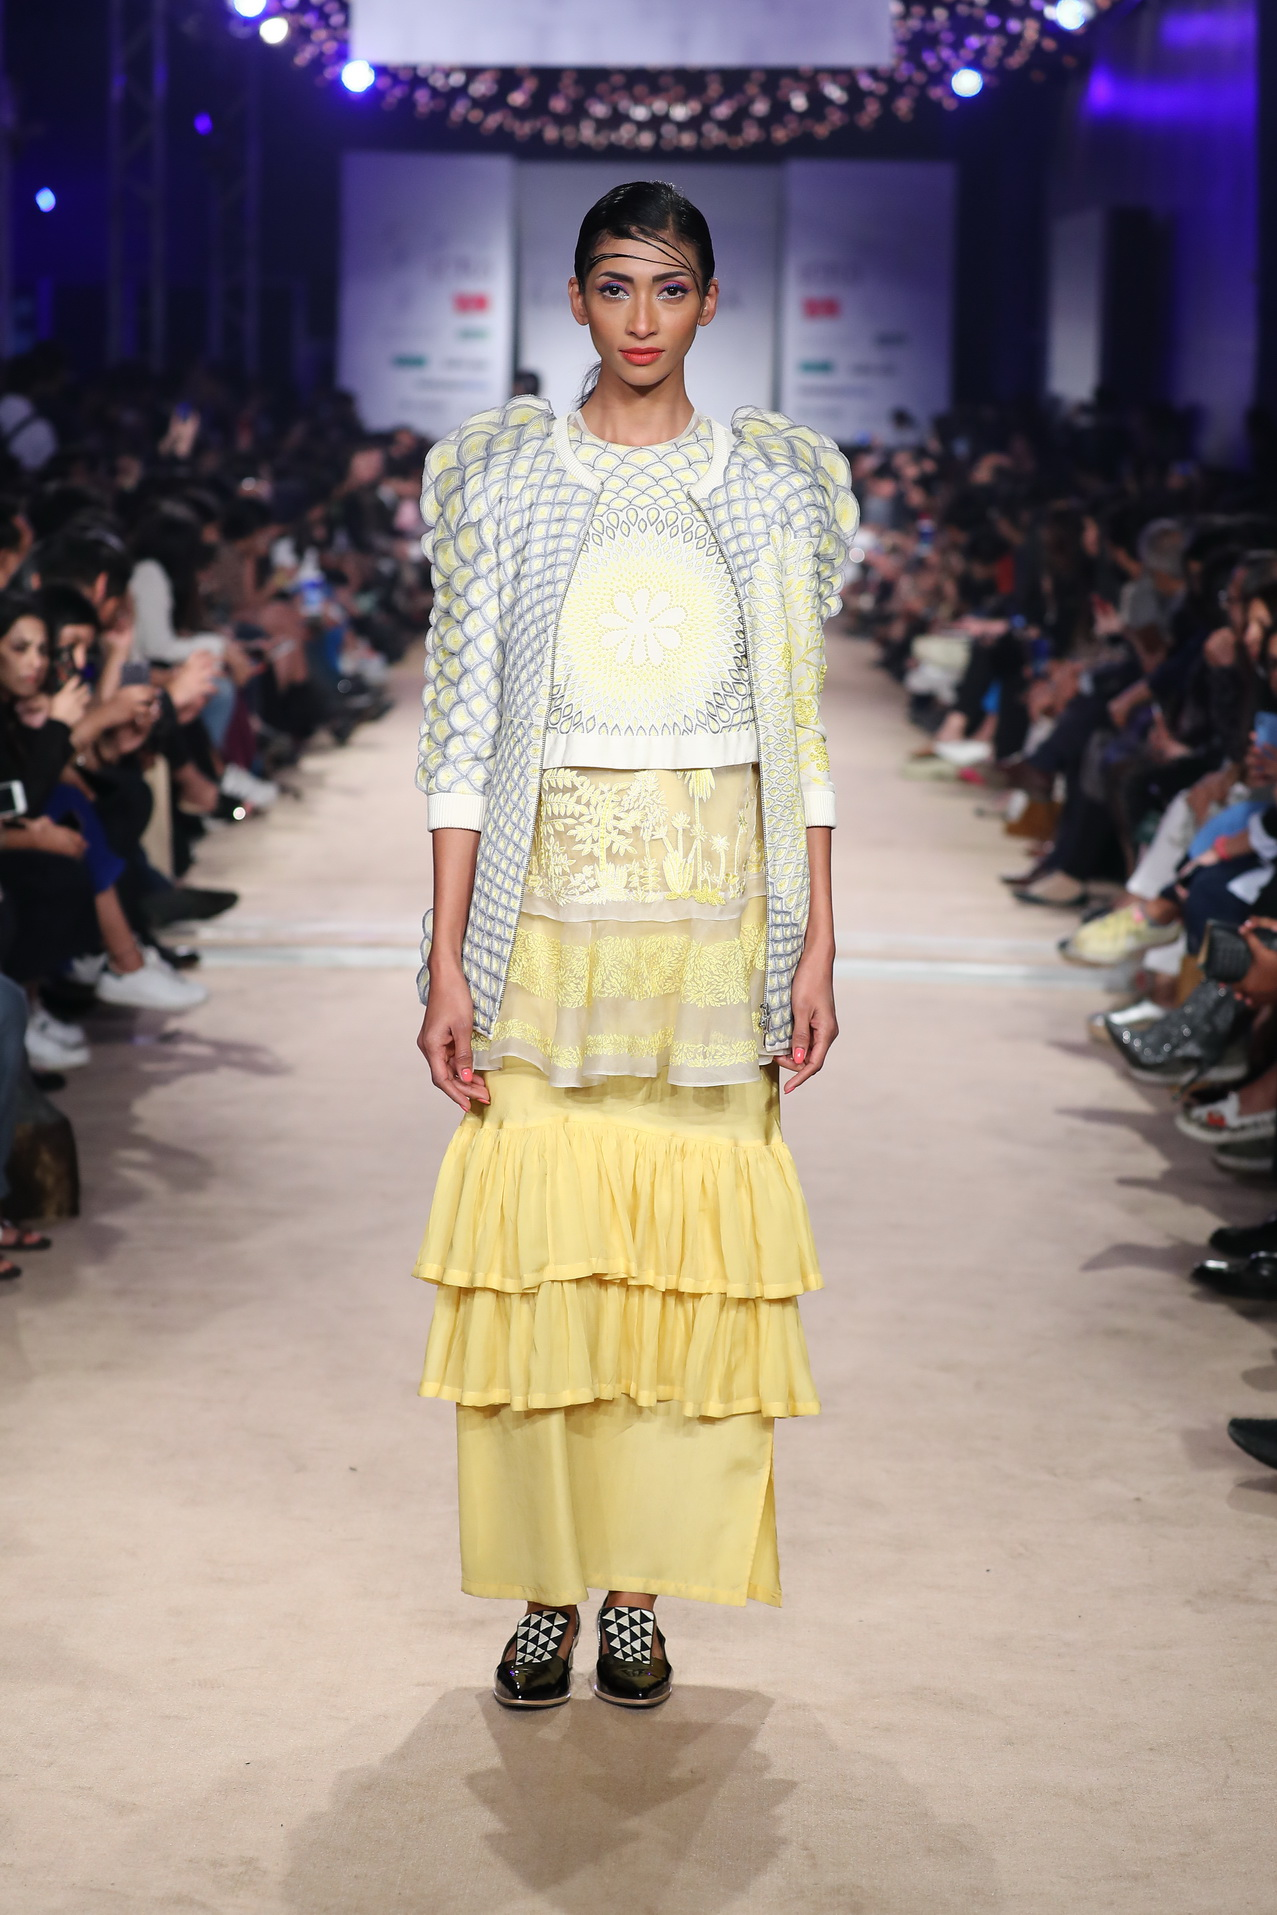 Collection by Designer Rahul Mishra @ FDCI Lotus Make-Up India Fashion Week Autumn/Winter 2019